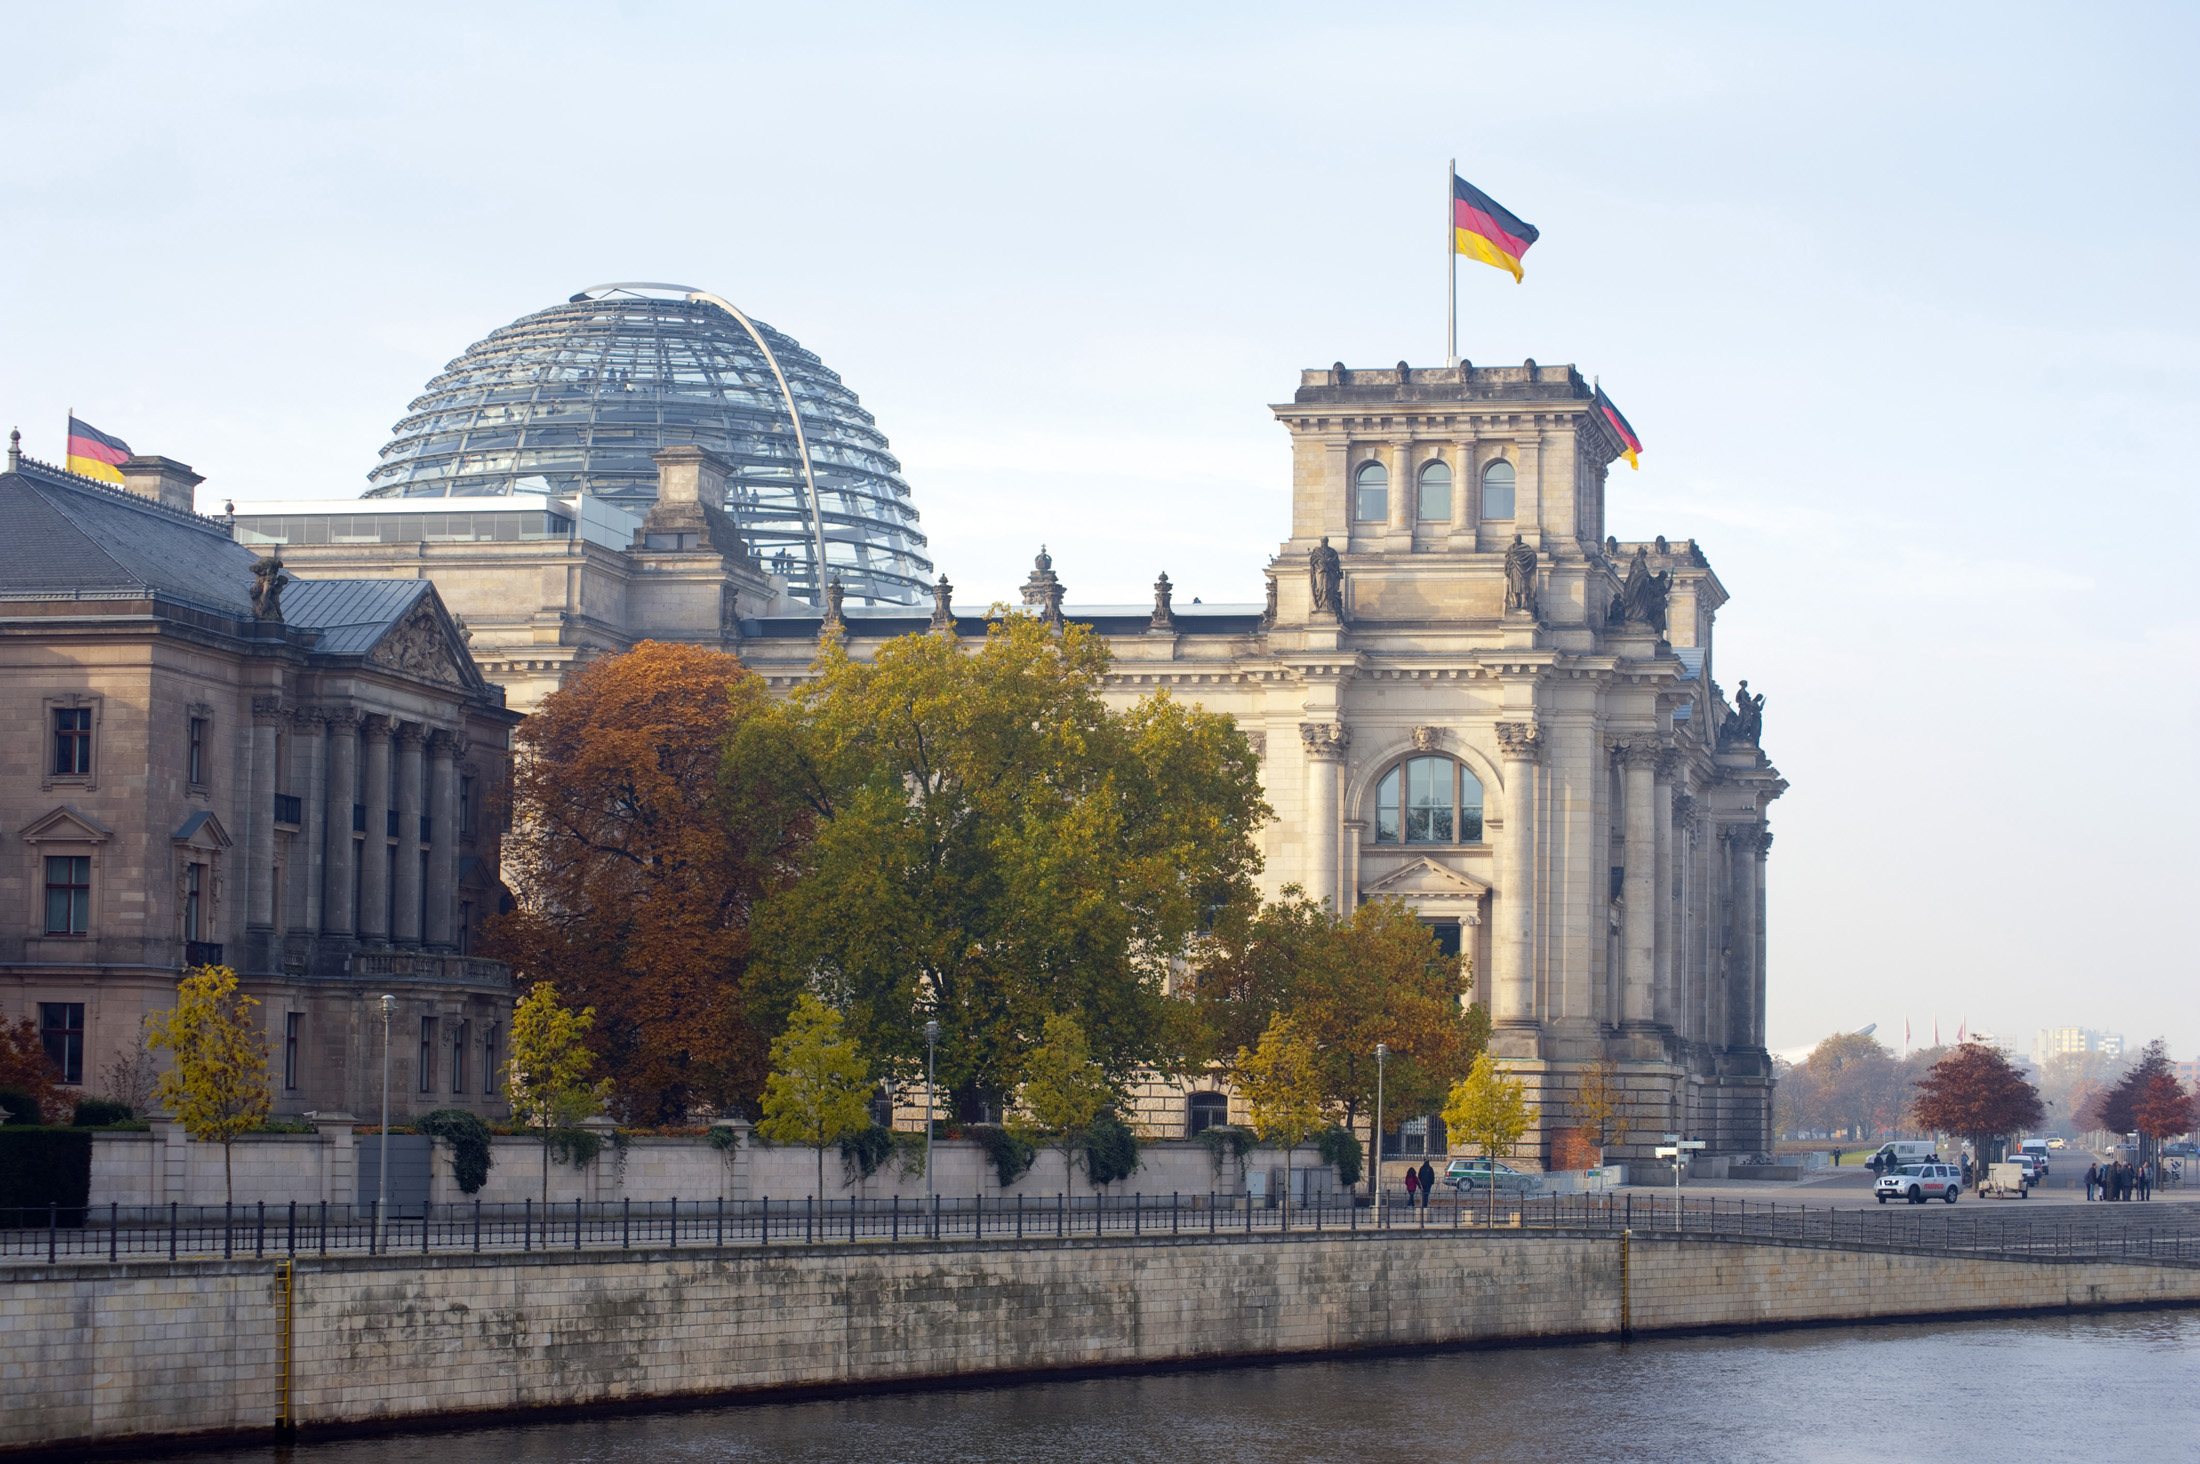 The reichstag in berlin, home of the german parliament